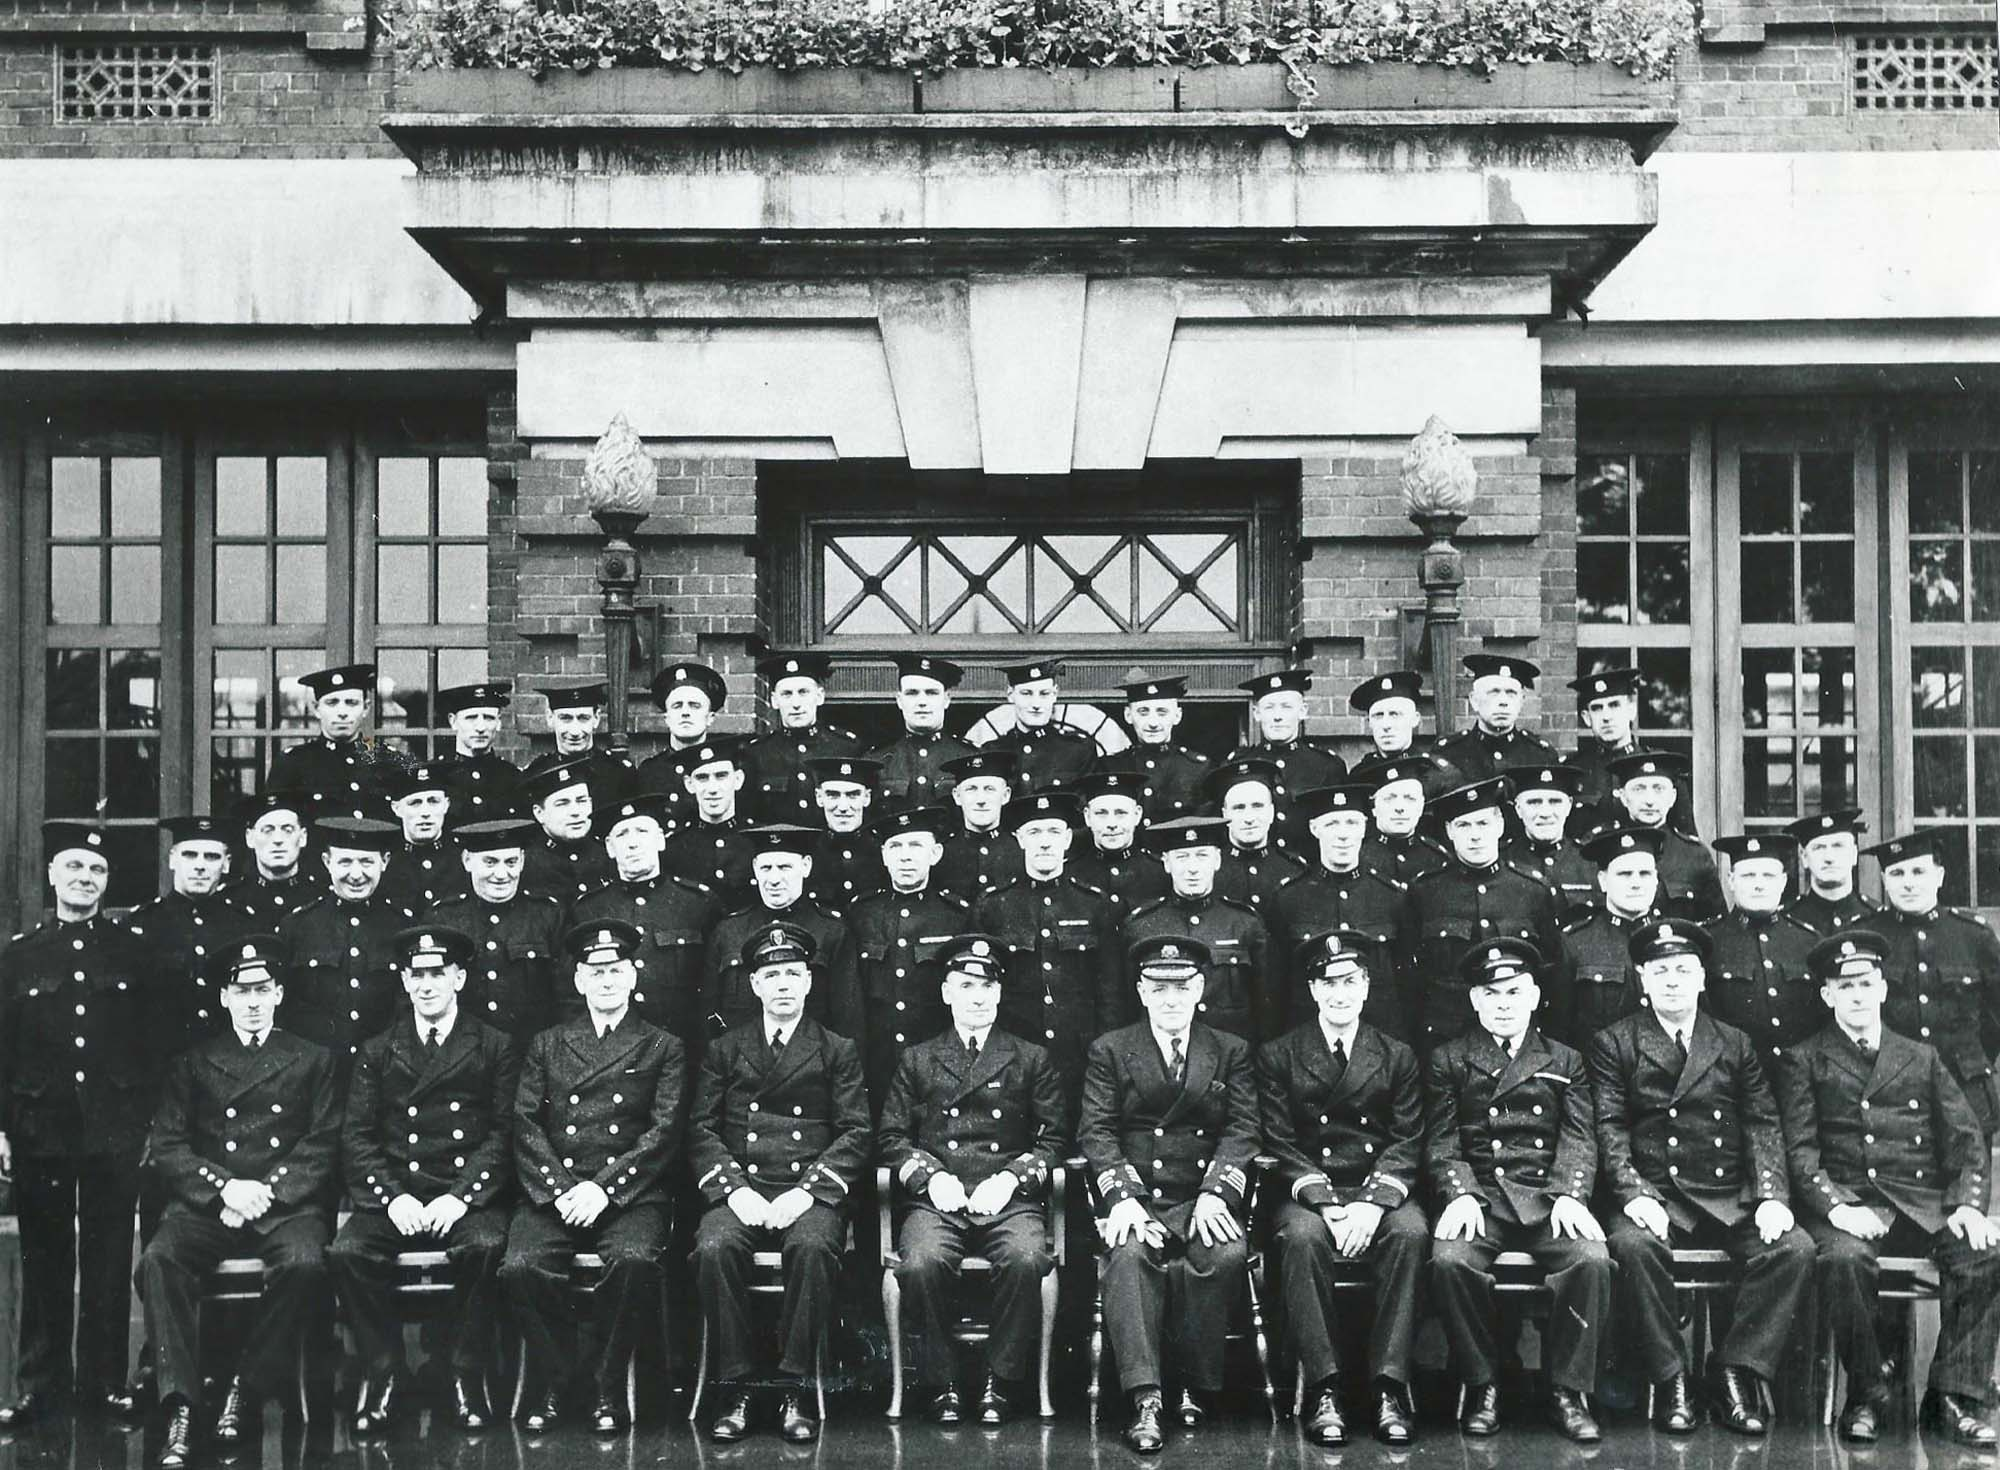 Fireman pose for a photo around 1936, possibly at a retirement get together - Malc Tovey